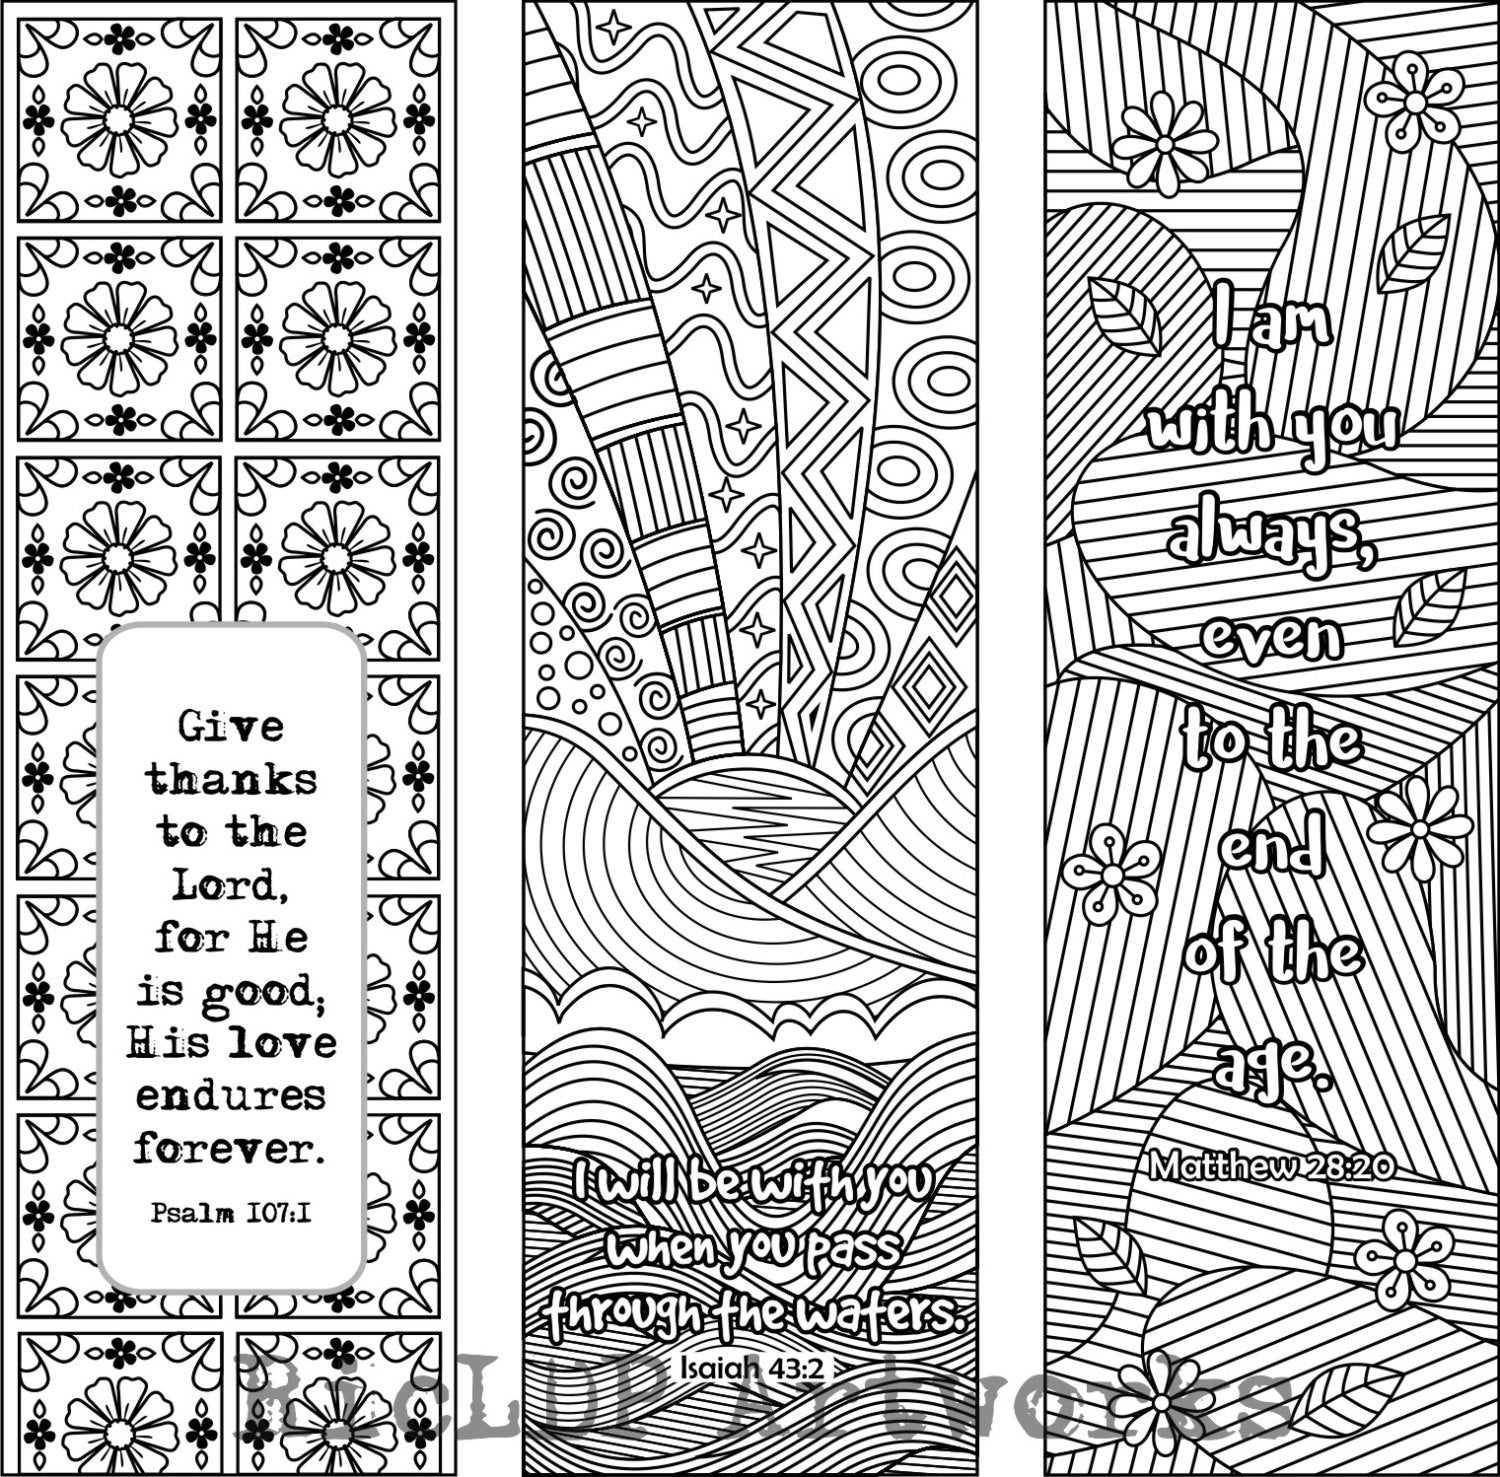 coloring bible verse bookmark 6 bible verse coloring bookmarks plus 3 designs by bookmark verse coloring bible